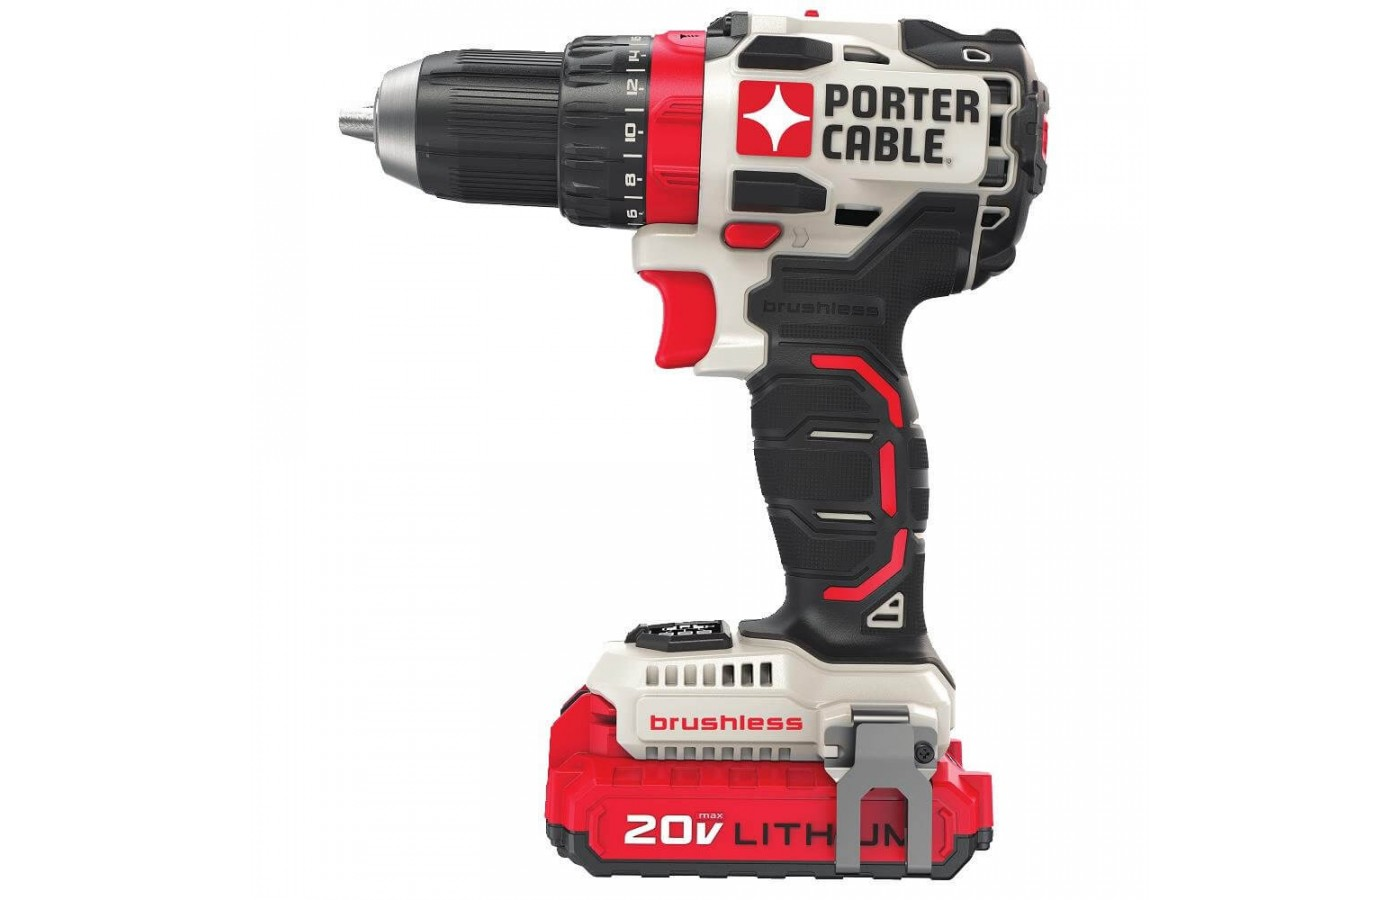 This drill is small and compact